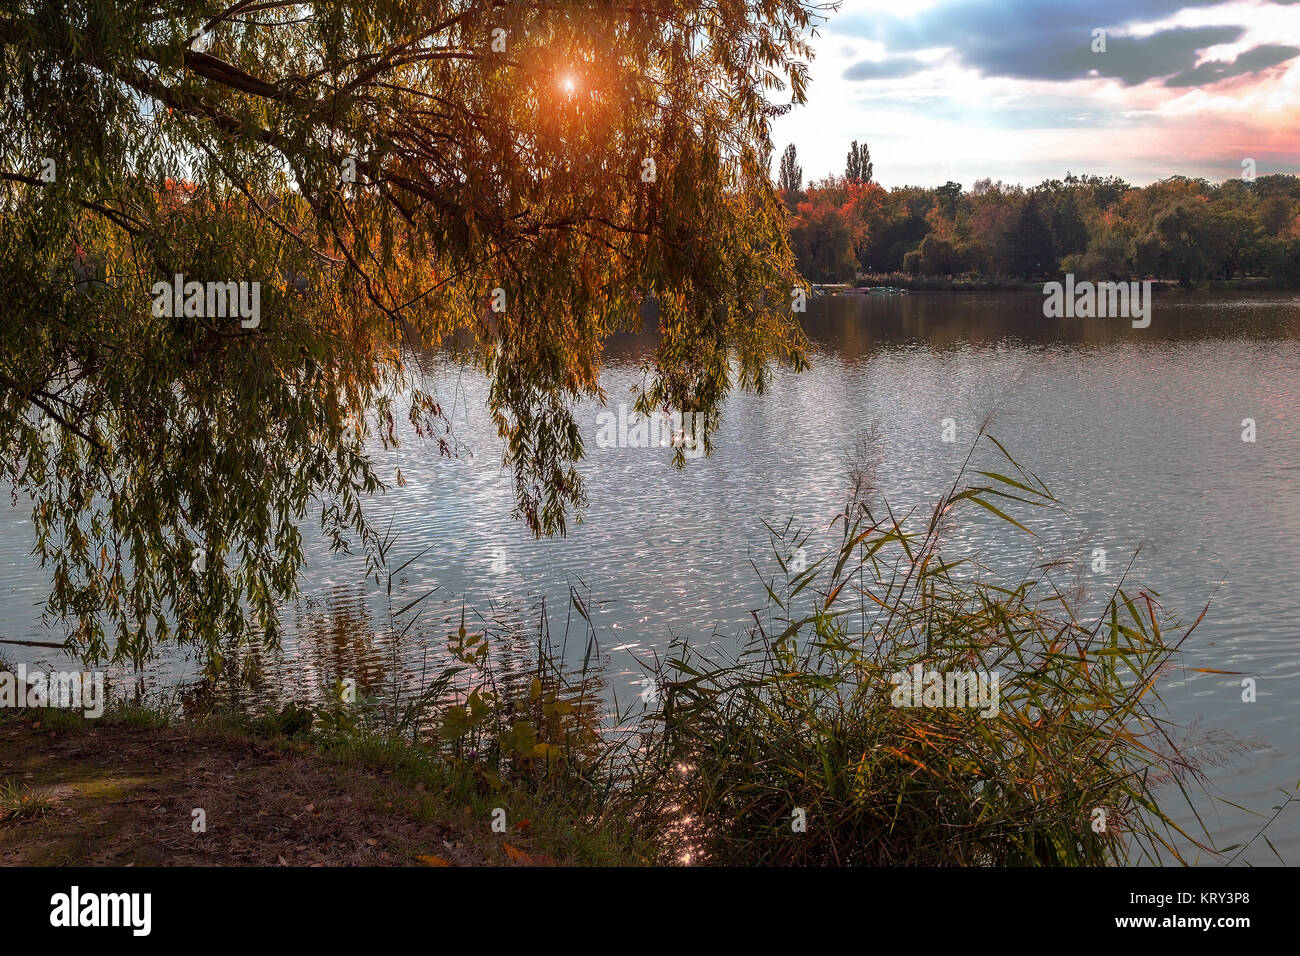 Evening landscape with a lake, trees and sun glare. Sunset above lake. The nature of Hungary - Stock Image